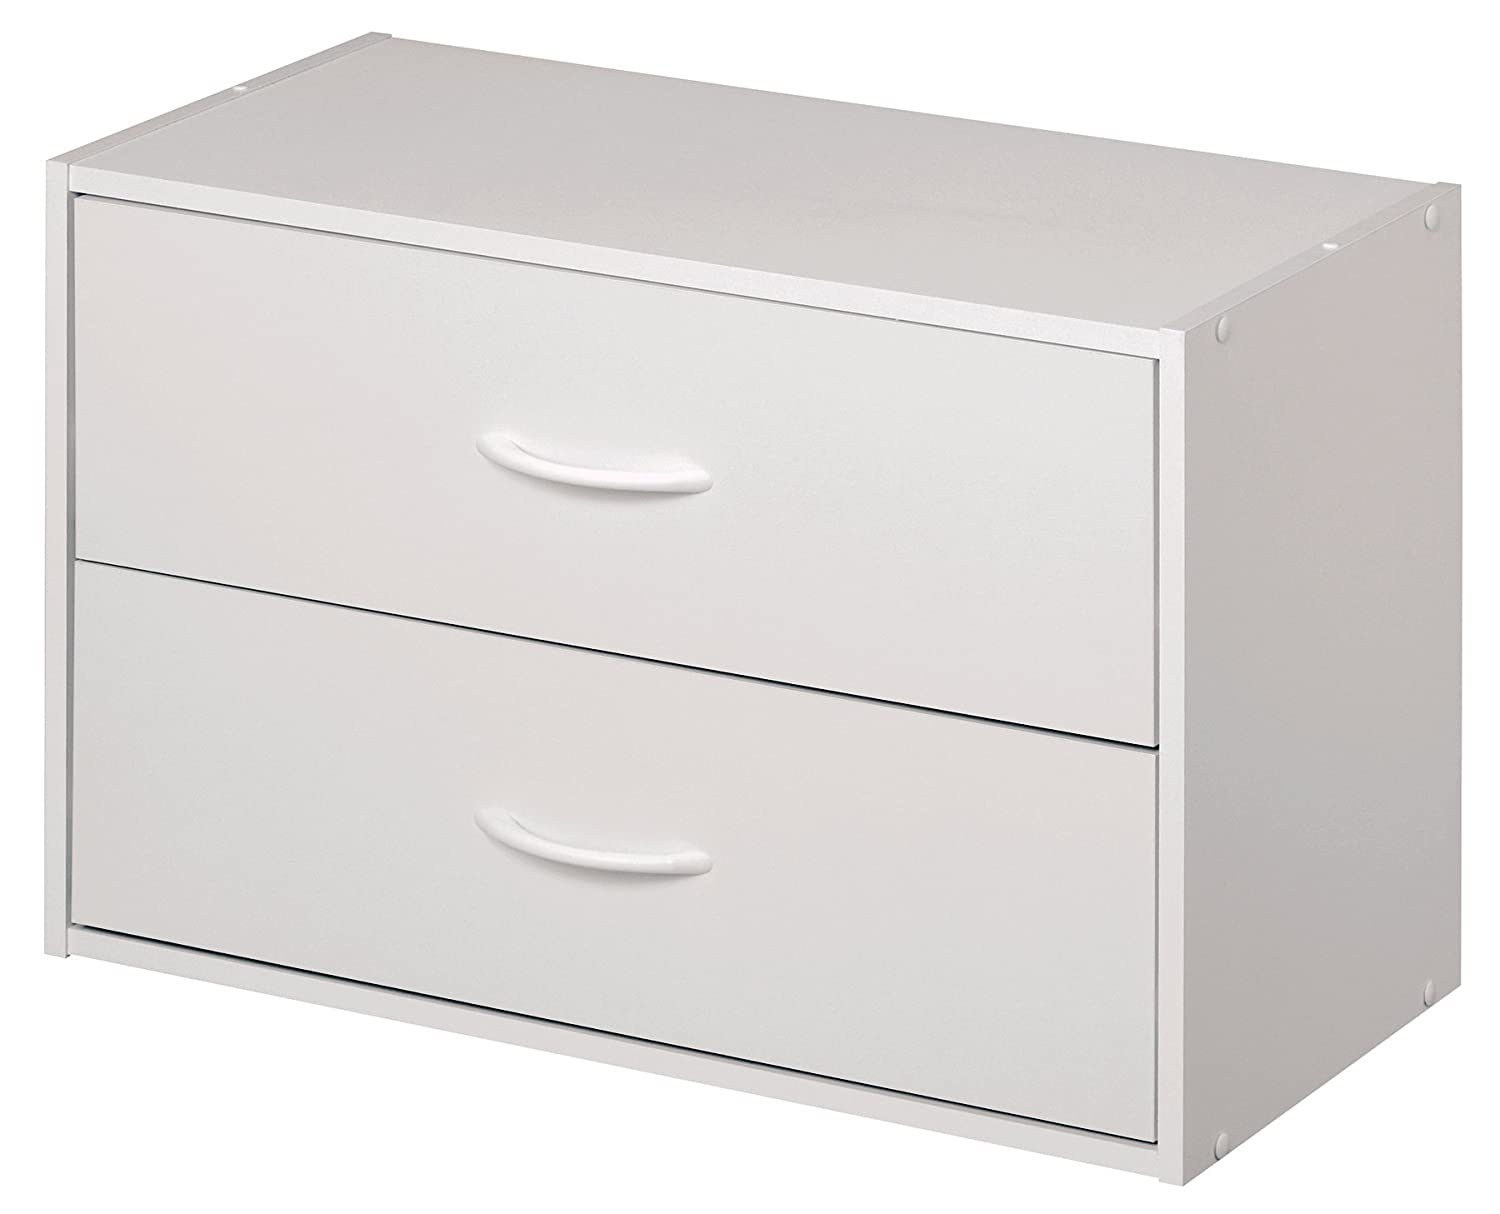 Closetmaid Storage Cabinet Cabinets White Storage Cabinet: Pantry Cabinet: Closetmaid Pantry Storage Cabinet With